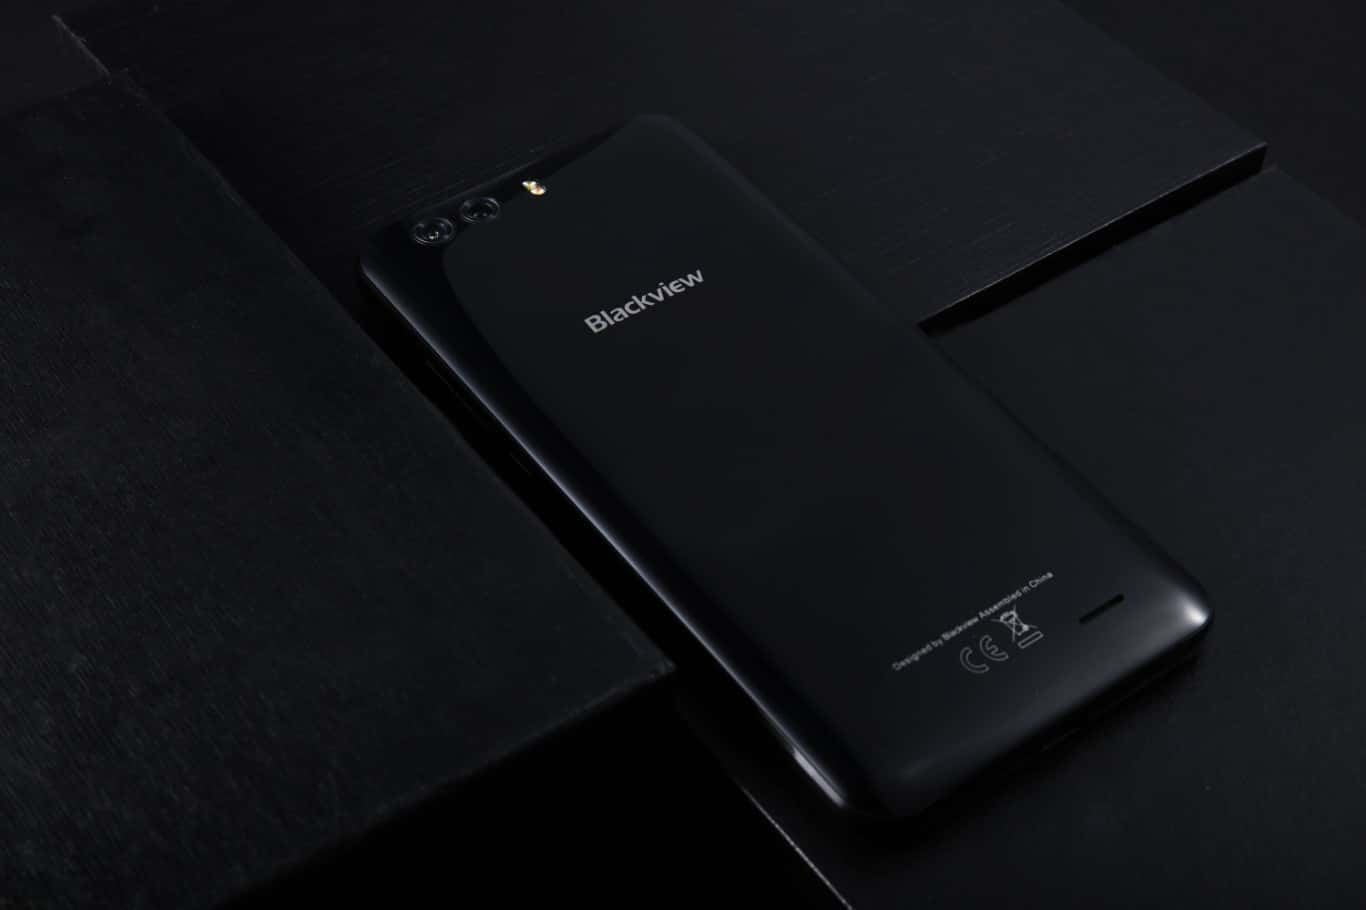 Root and Install TWRP Recovery on Blackview P6000, How to Root Blackview P6000, Install TWRP Recovery on Blackview P6000, Root Blackview P6000 Using supersu